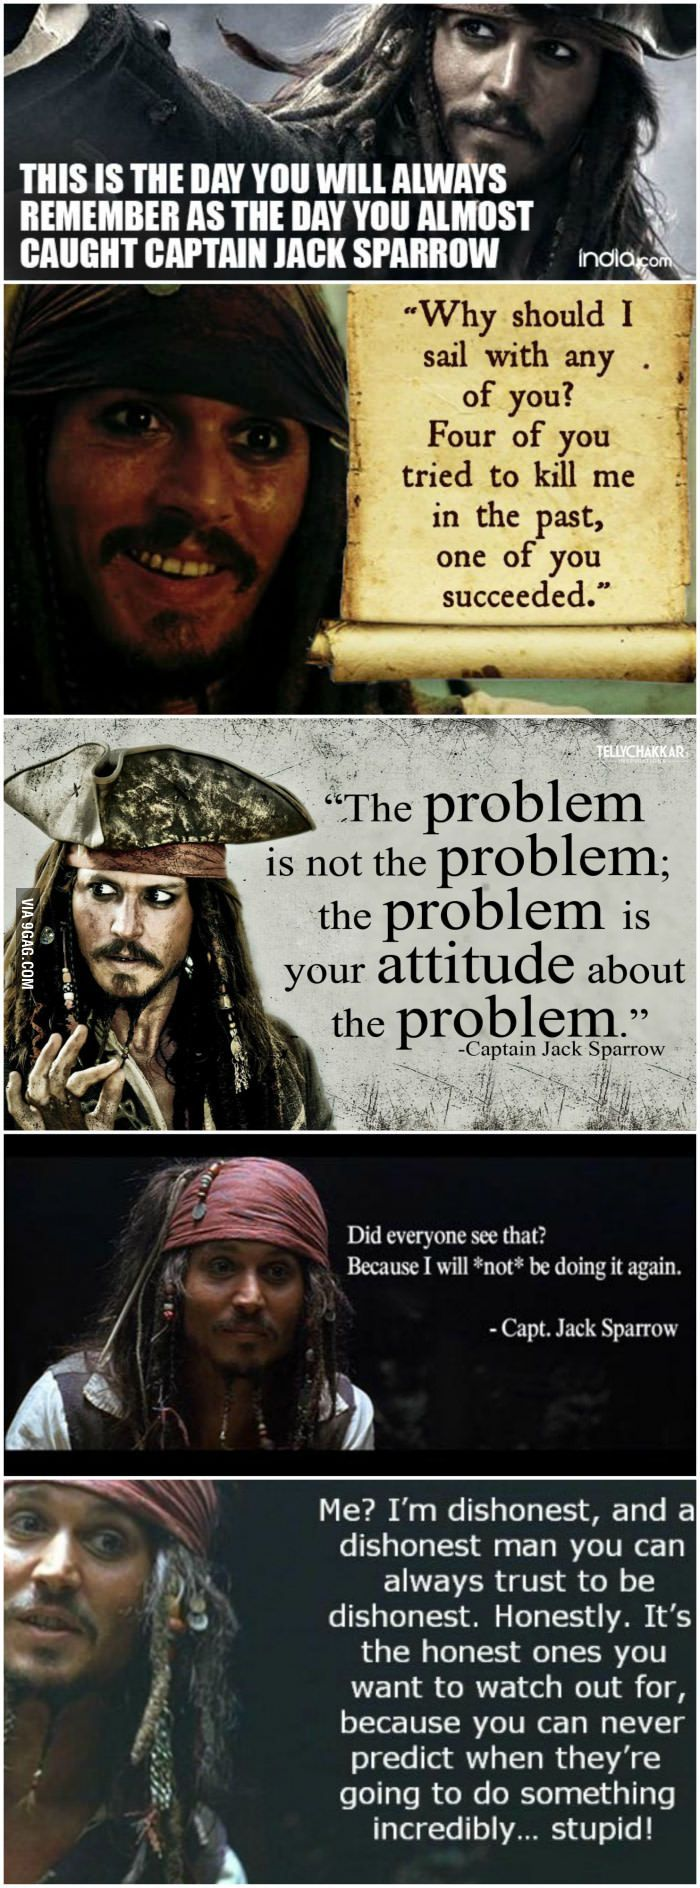 Some awesome Captain Jack Sparrow quotes to brighten your day! - 9GAG